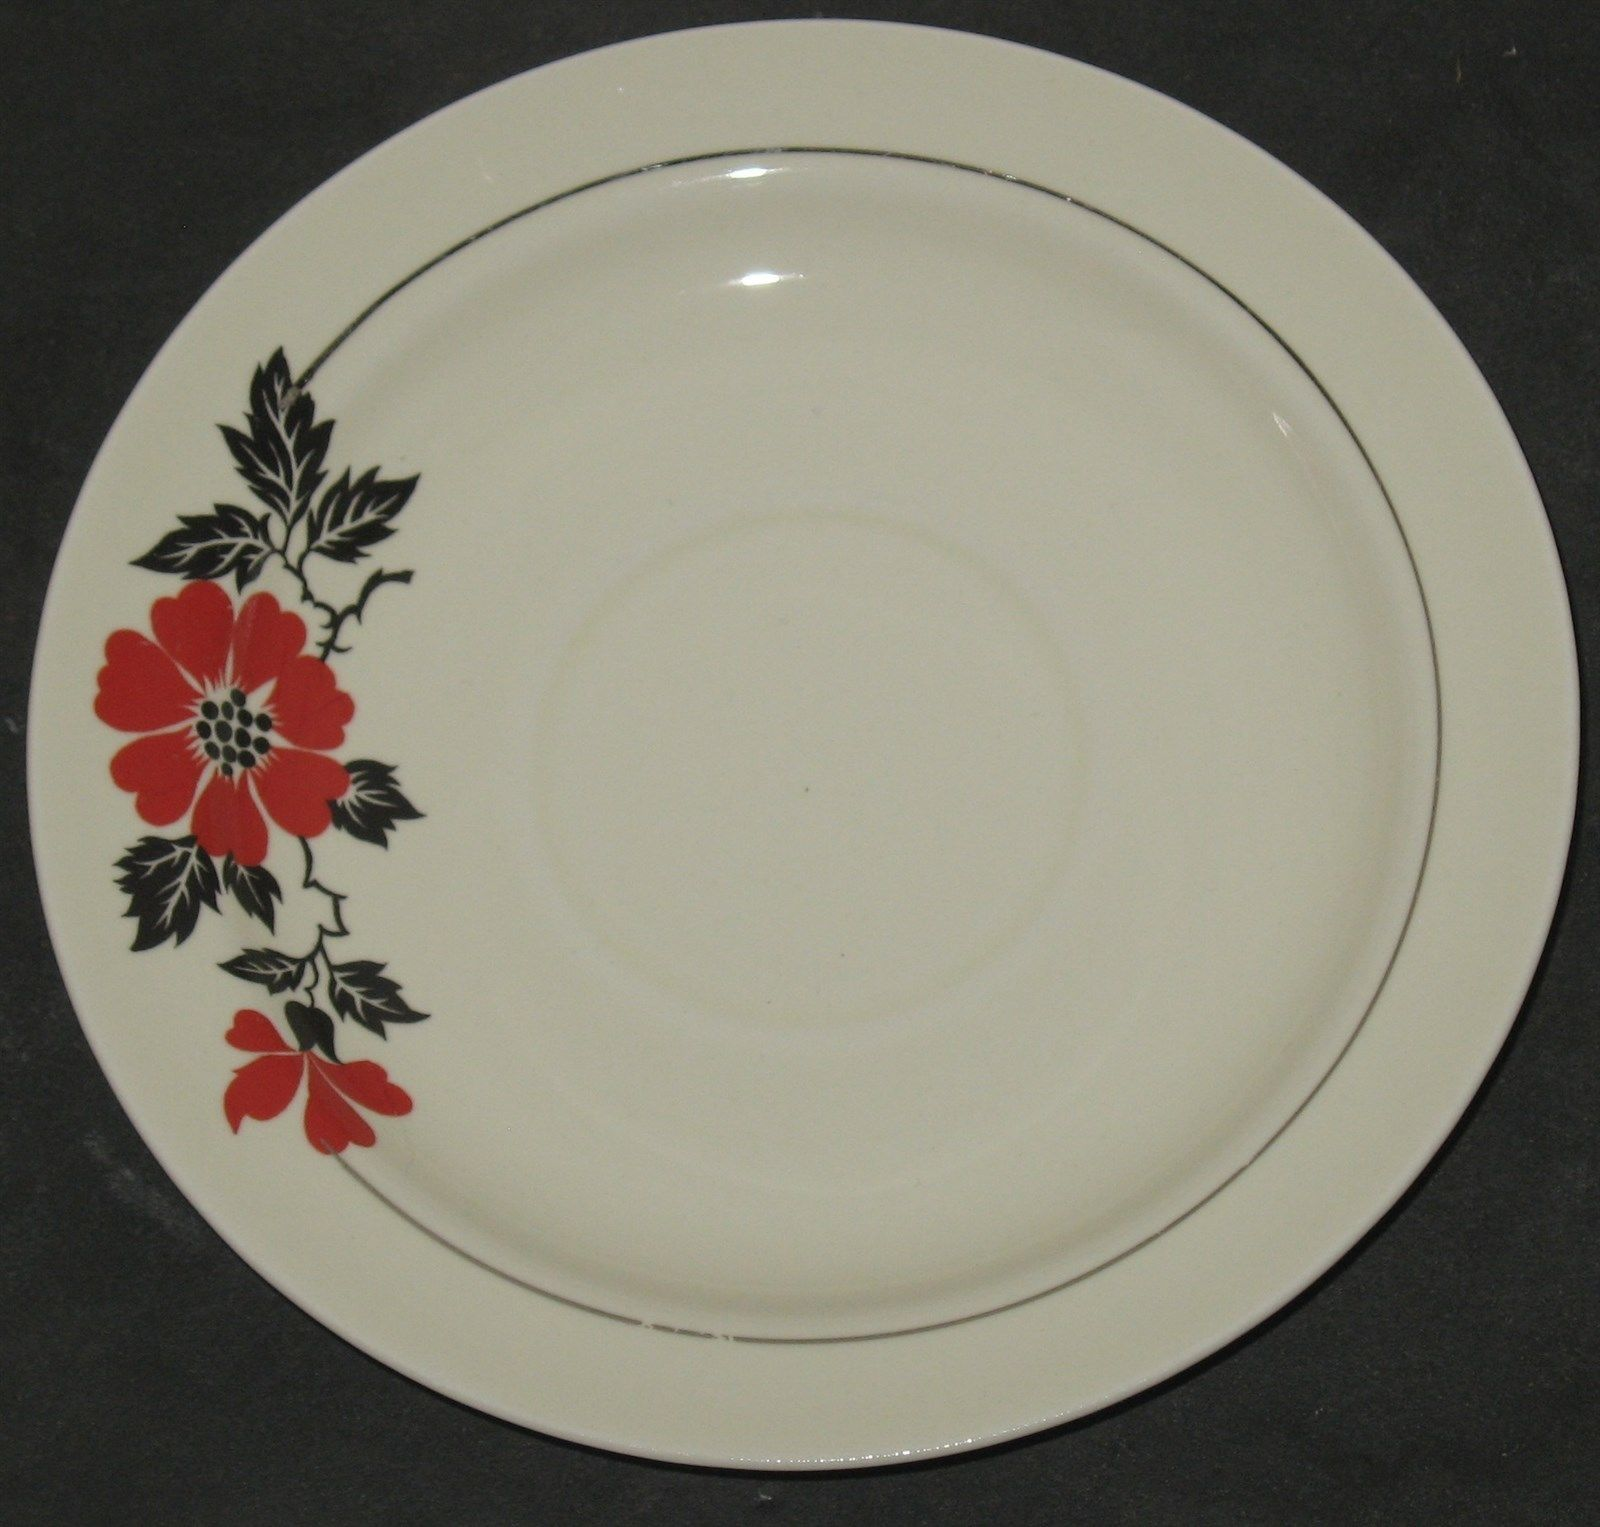 Vtg Superior Hall Quality Dinnerware Red Poppies Poppy 6  Saucer Plate & Vtg Superior Hall Quality Dinnerware Red and 50 similar items